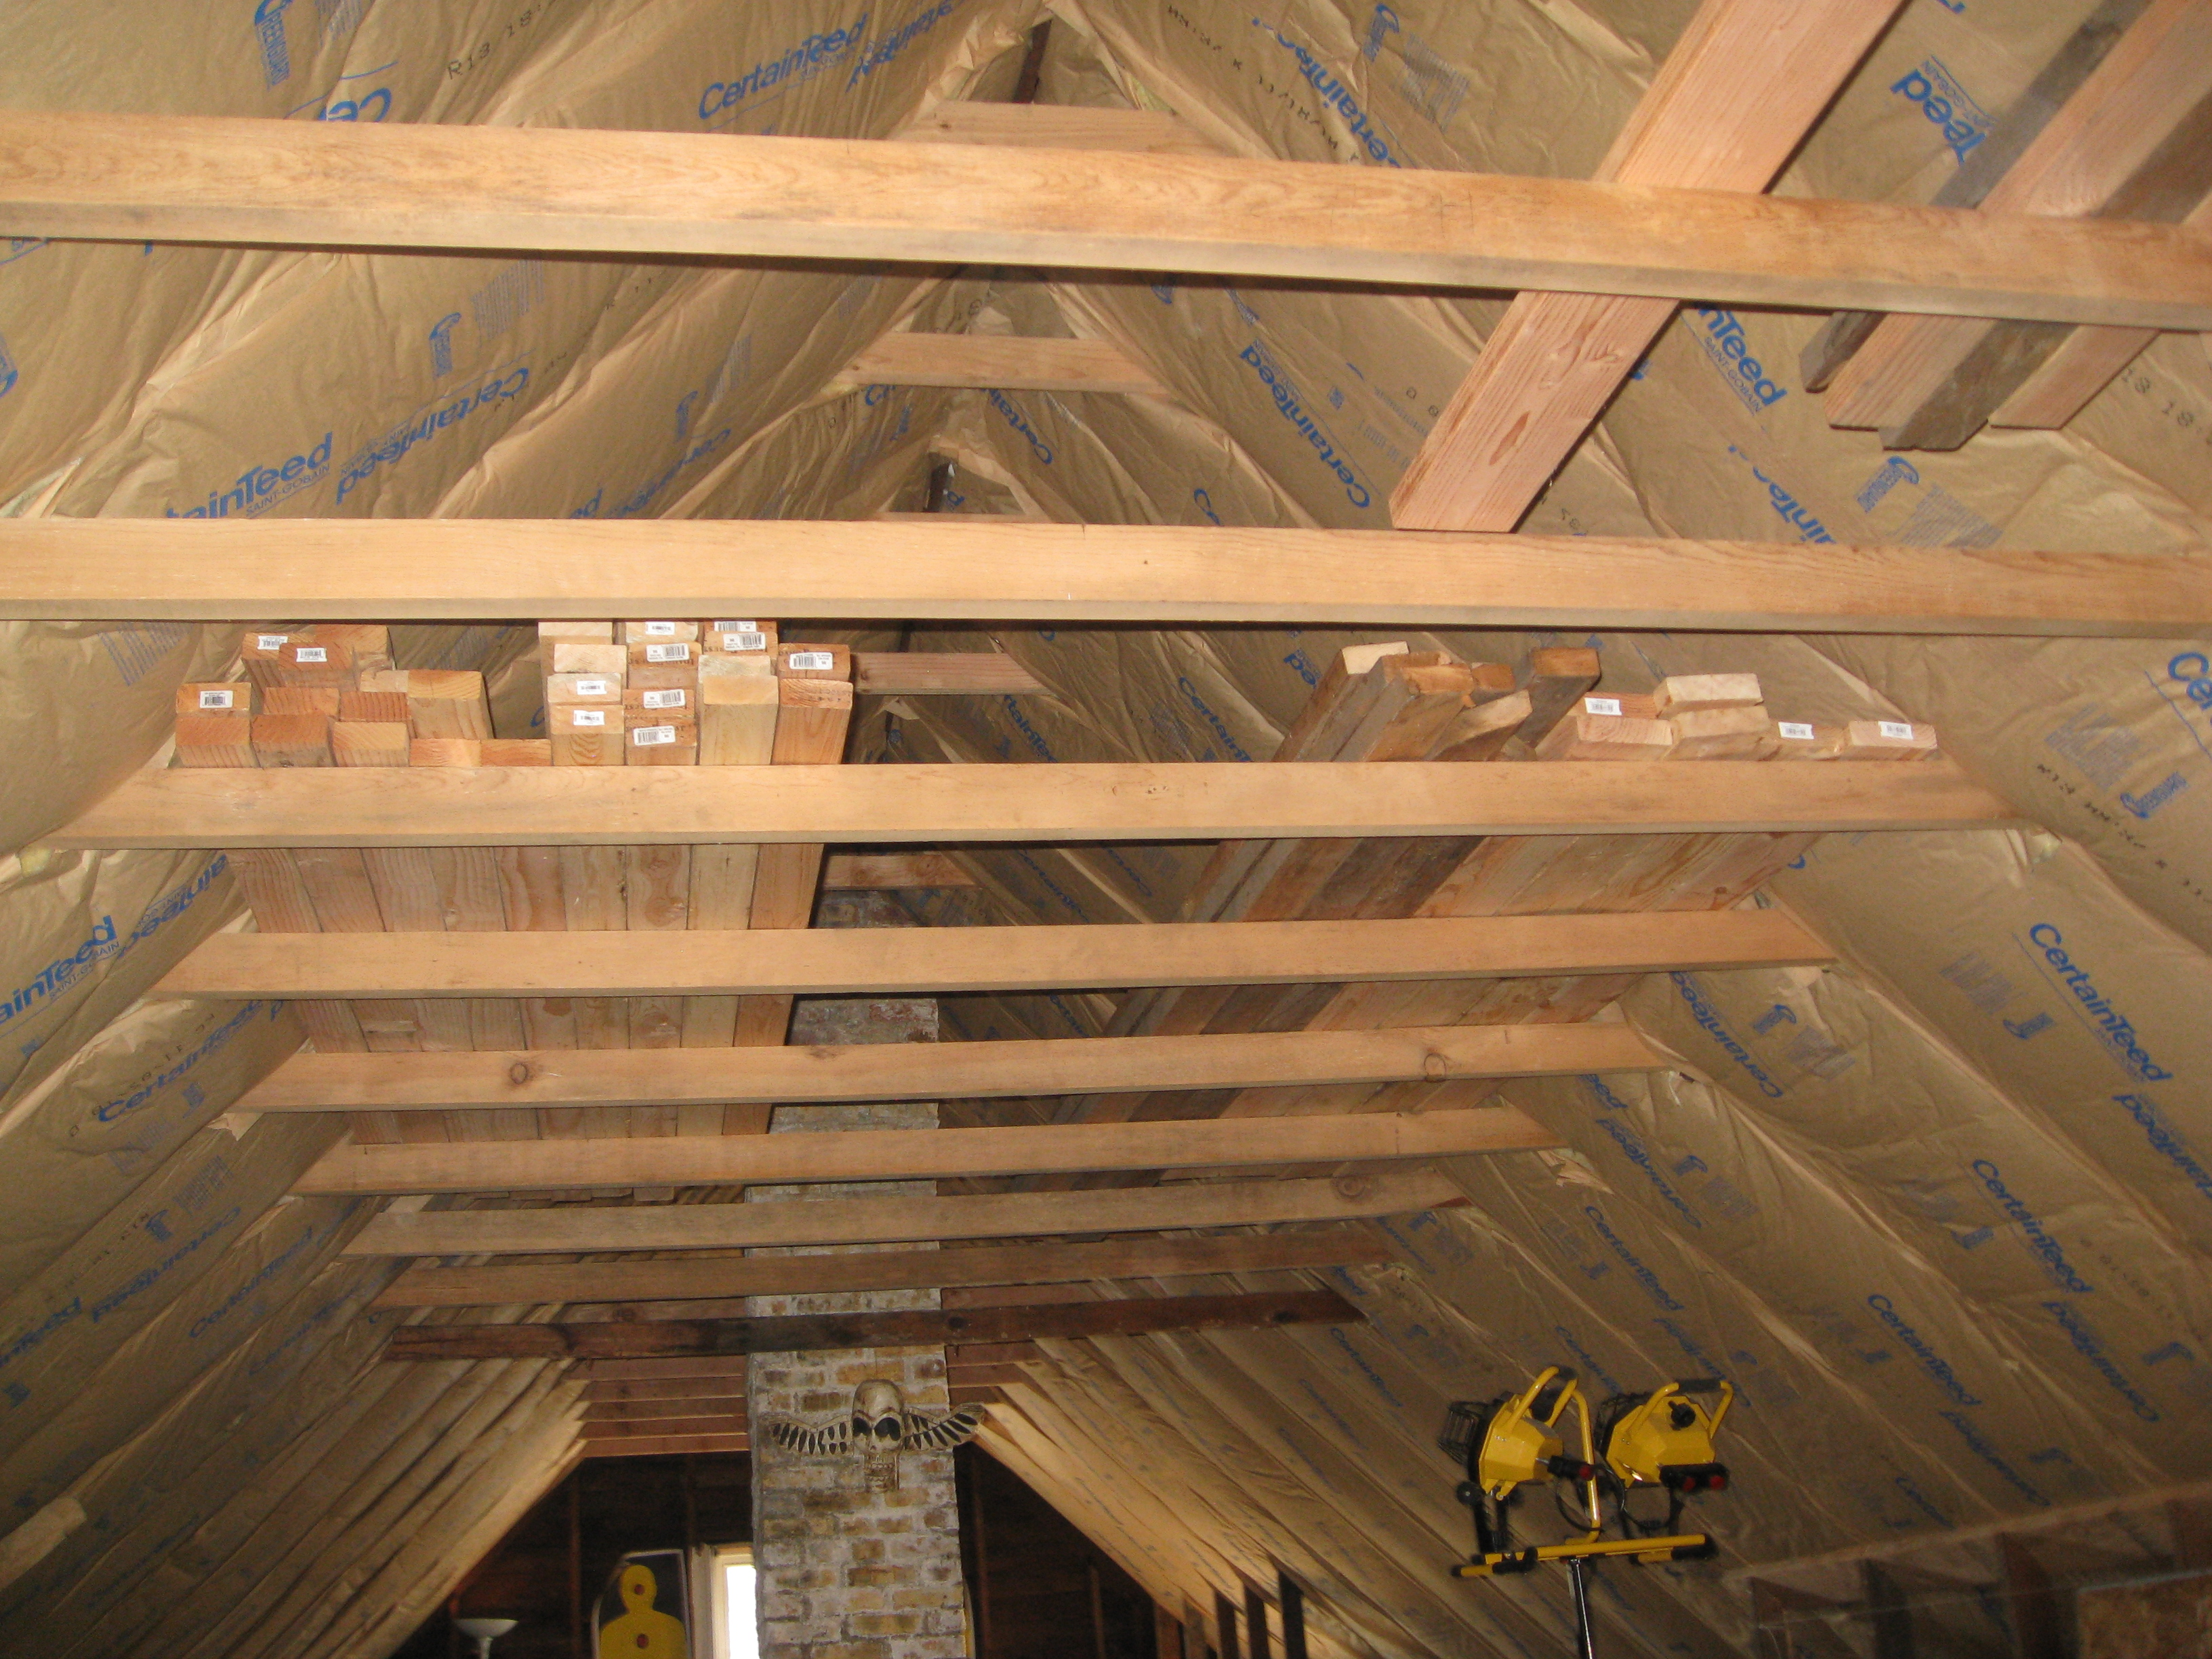 rfz based control room in an a frame attic lumber suppliesjpg